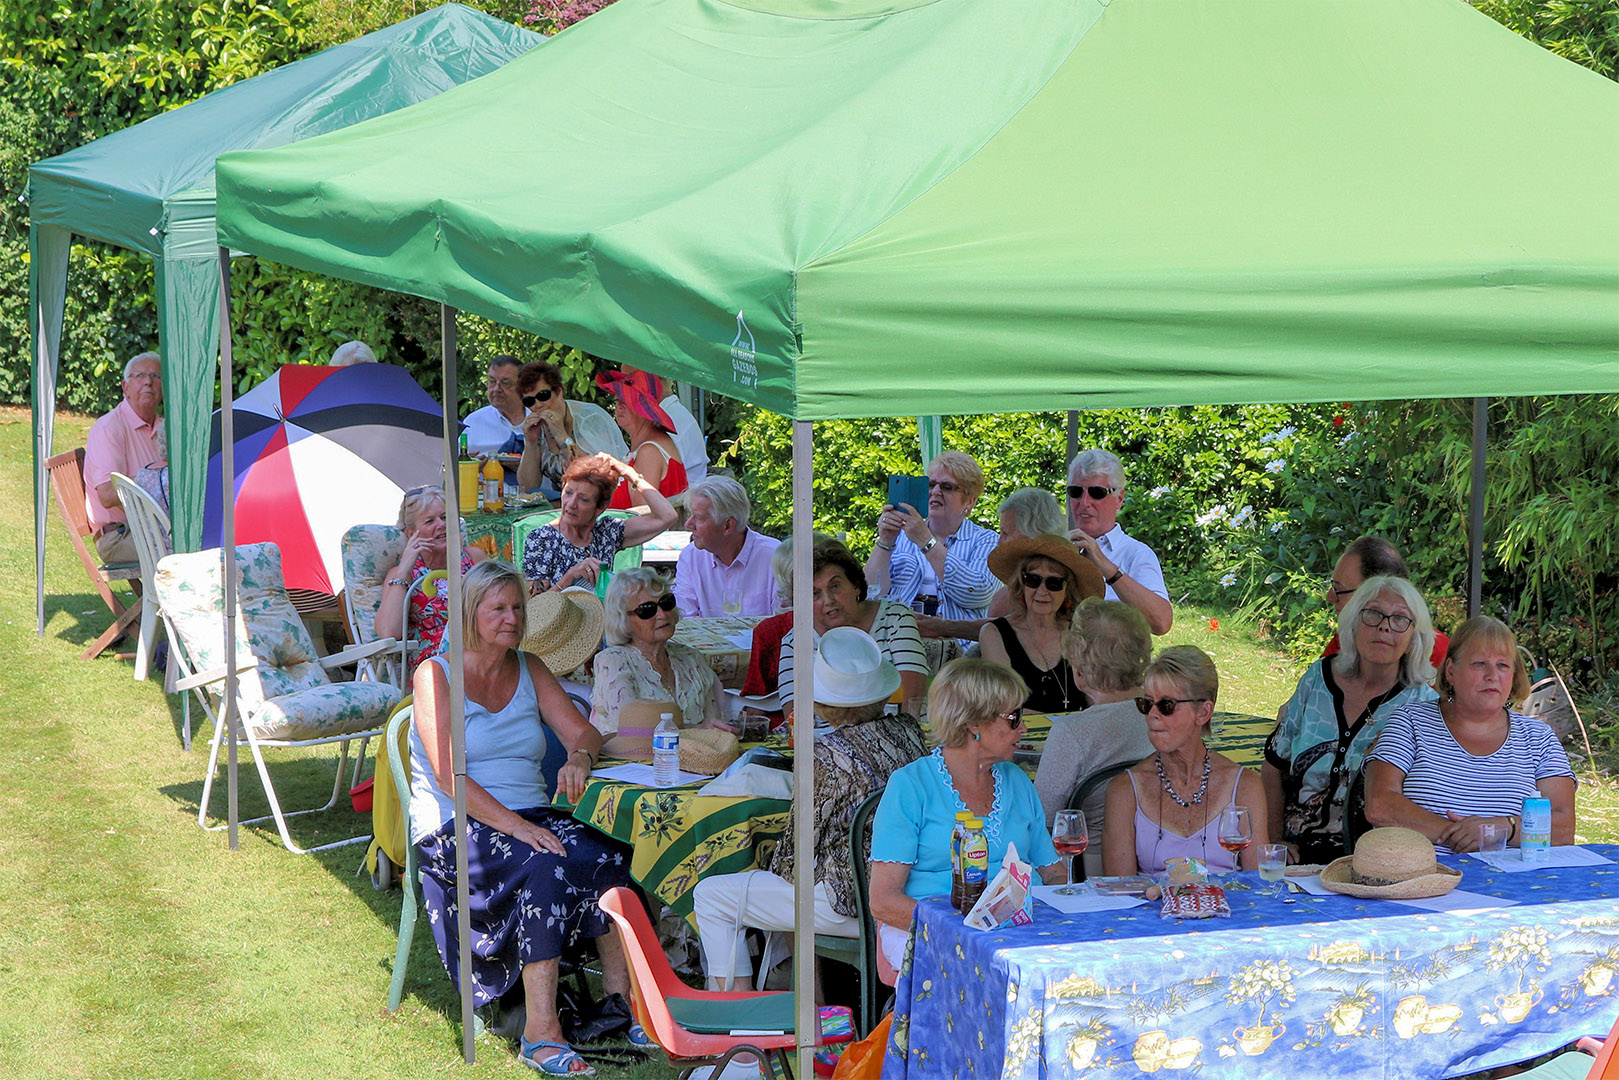 Views of the Charity Garden Party 2019